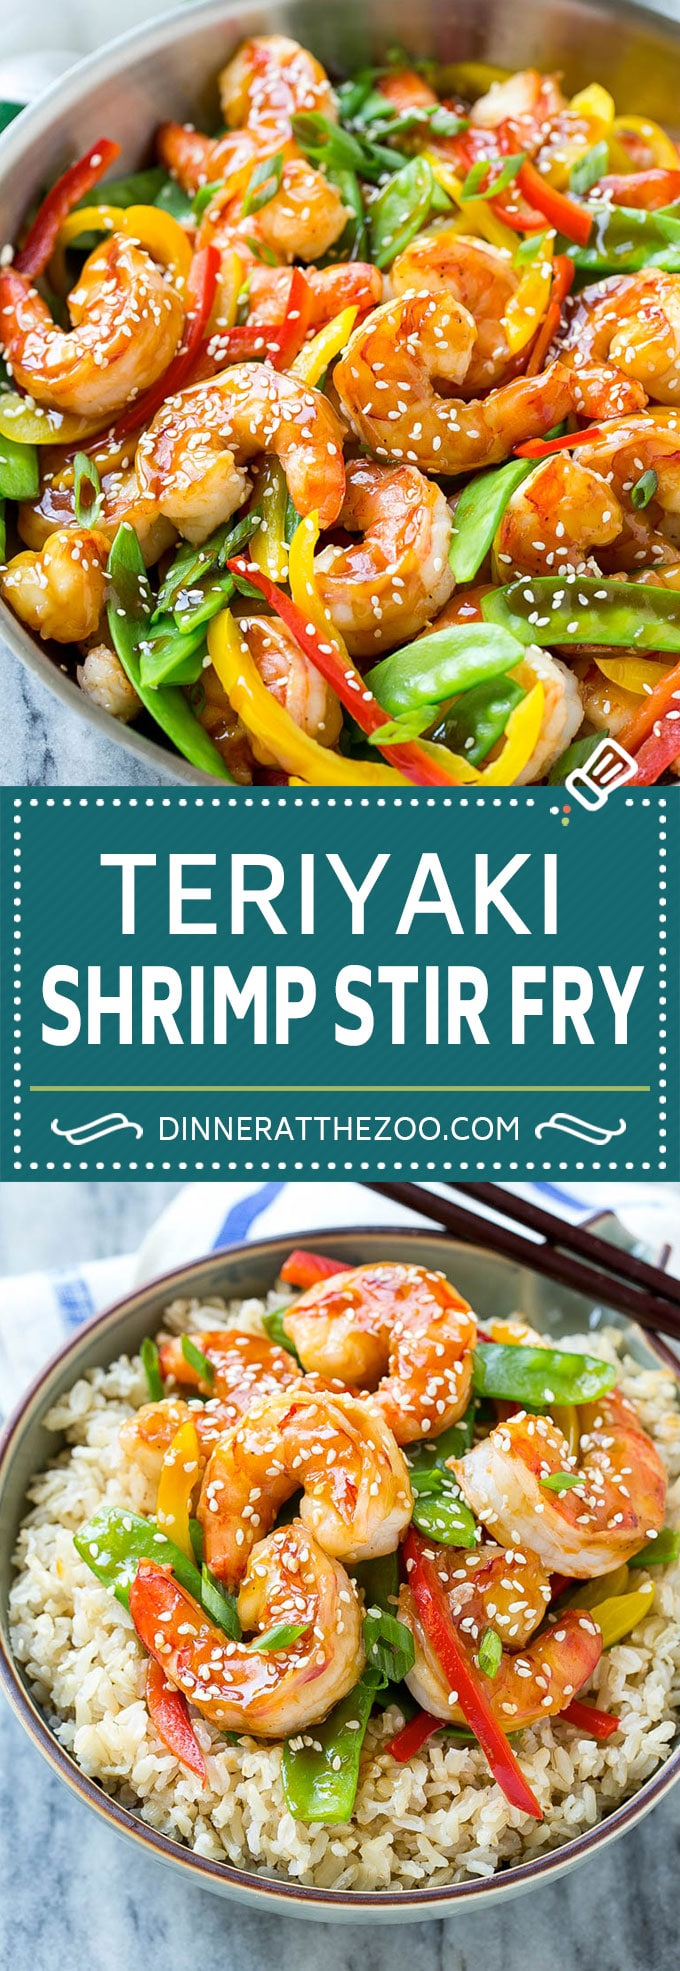 Teriyaki Shrimp Stir Fry - Dinner at the Zoo